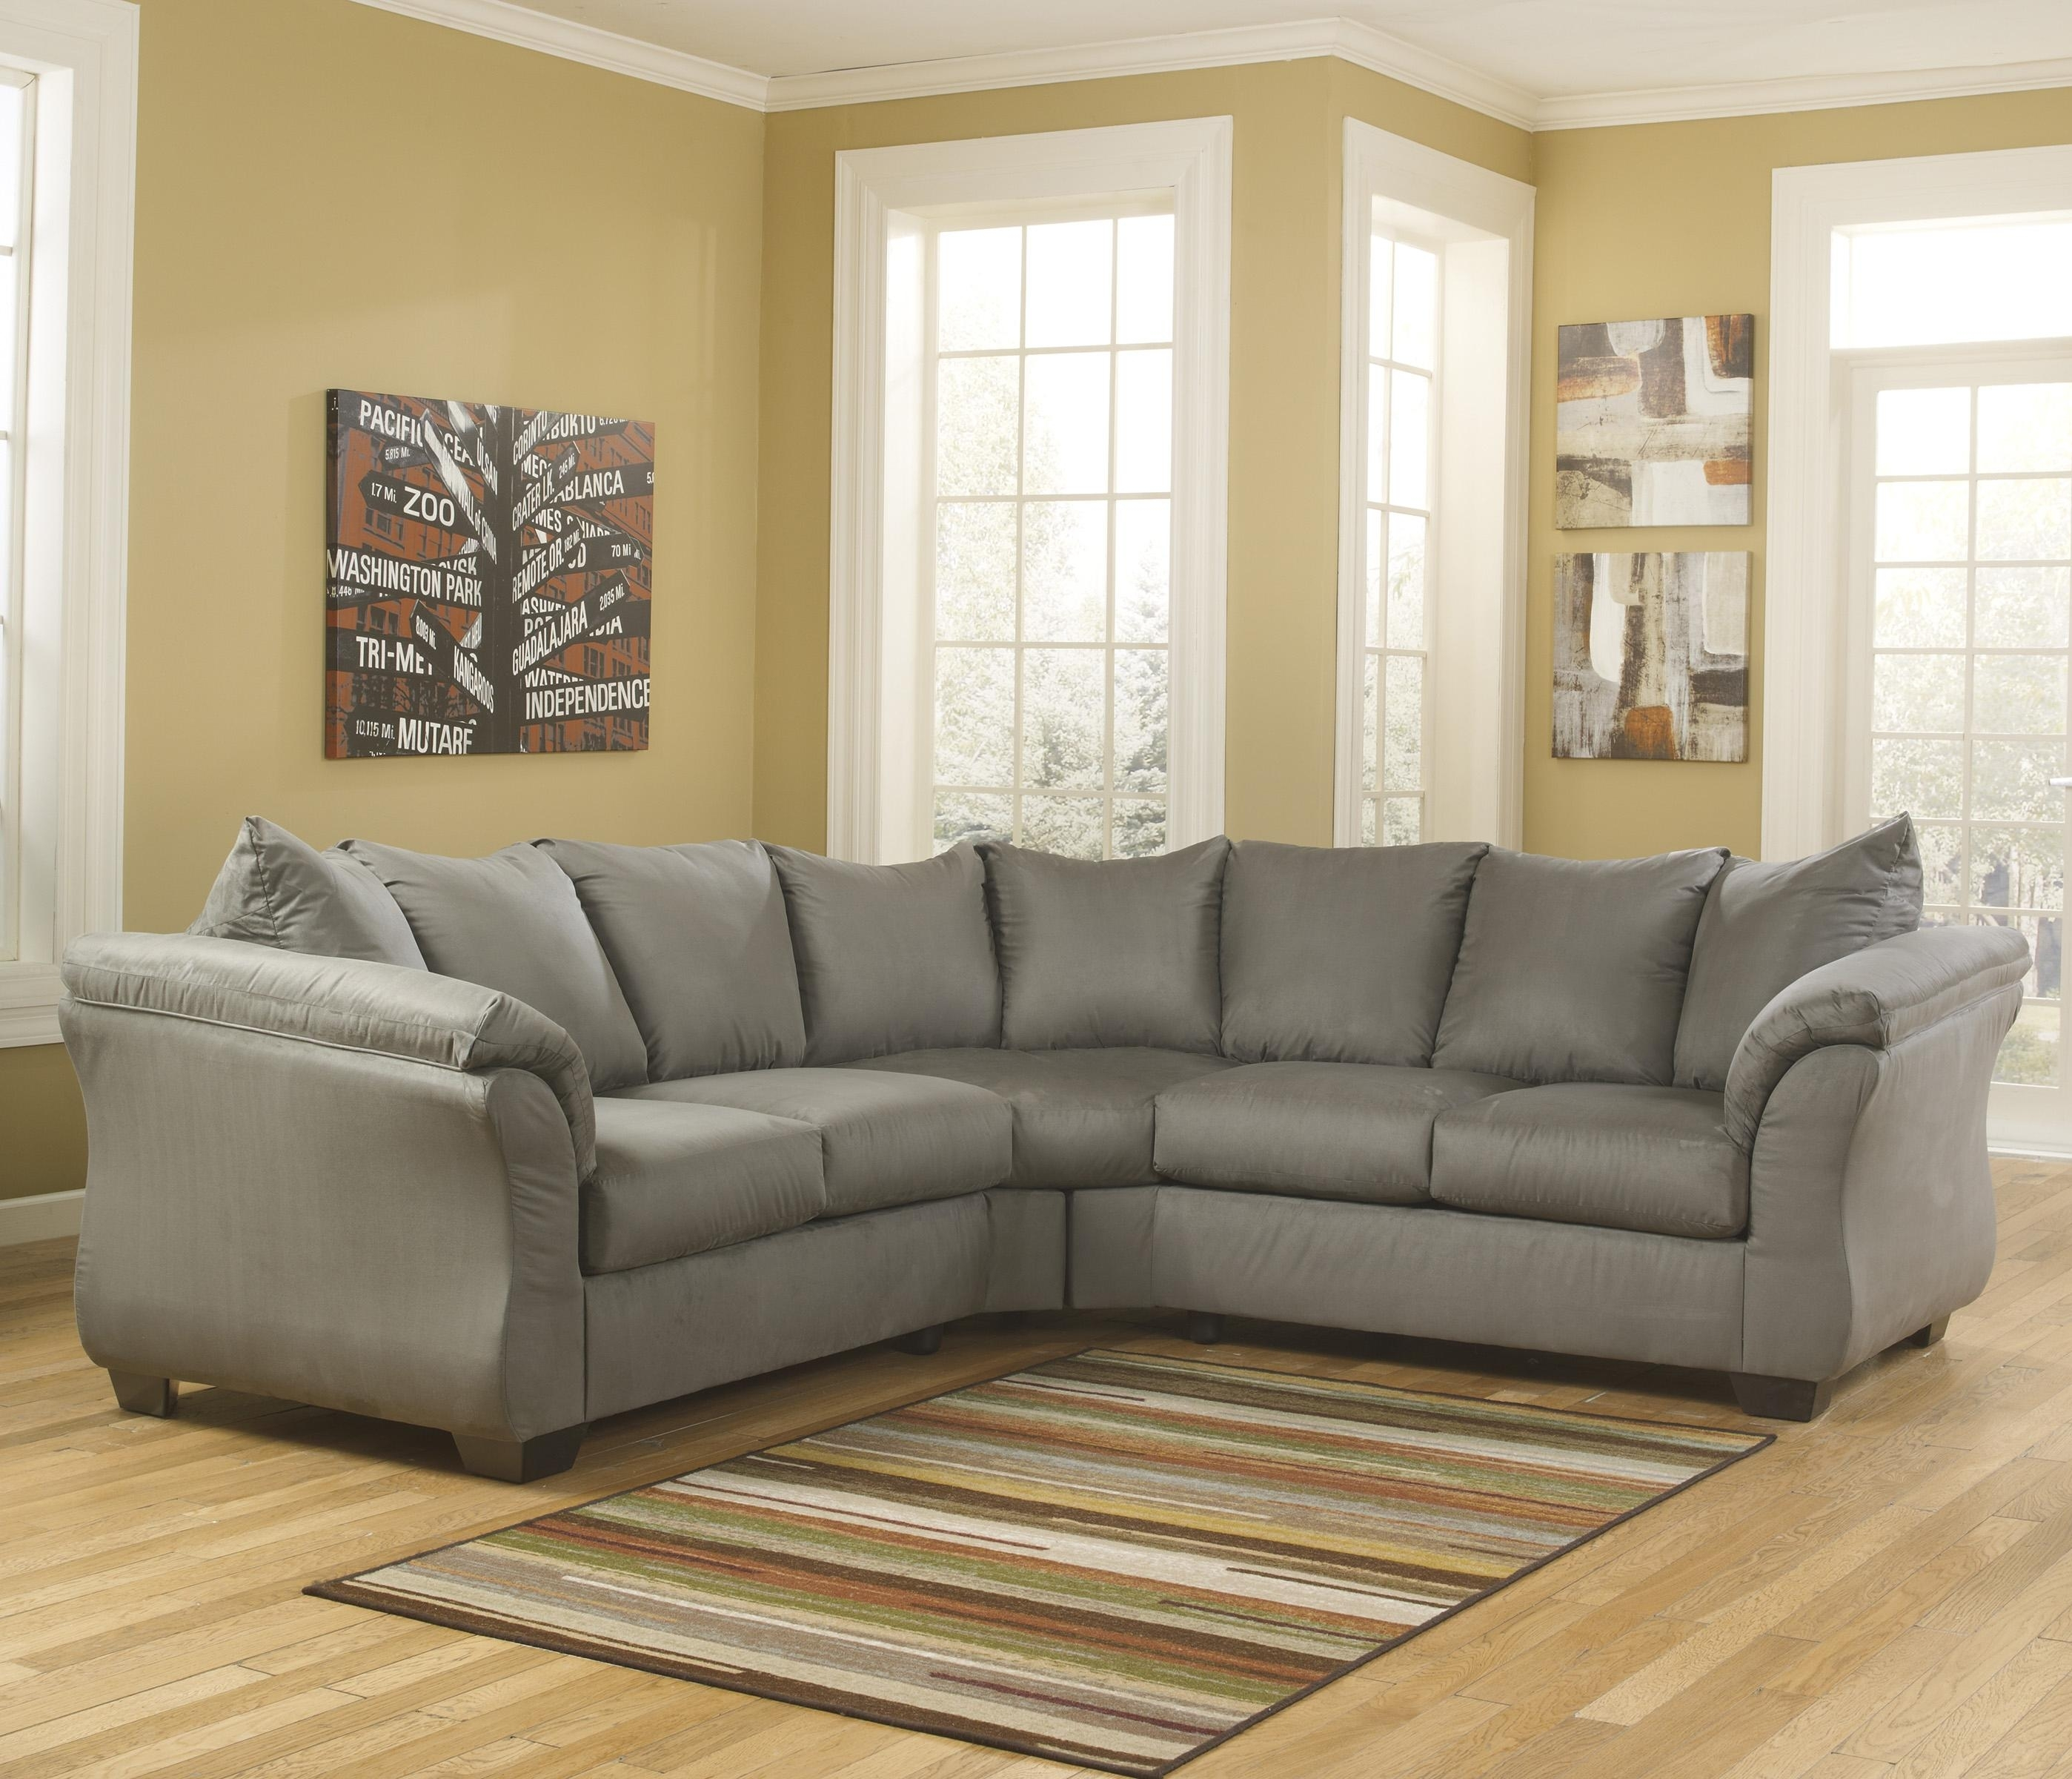 Darcy - Cobblestone Sectional Sofasignature Designashley intended for Kingston Ontario Sectional Sofas (Image 1 of 10)